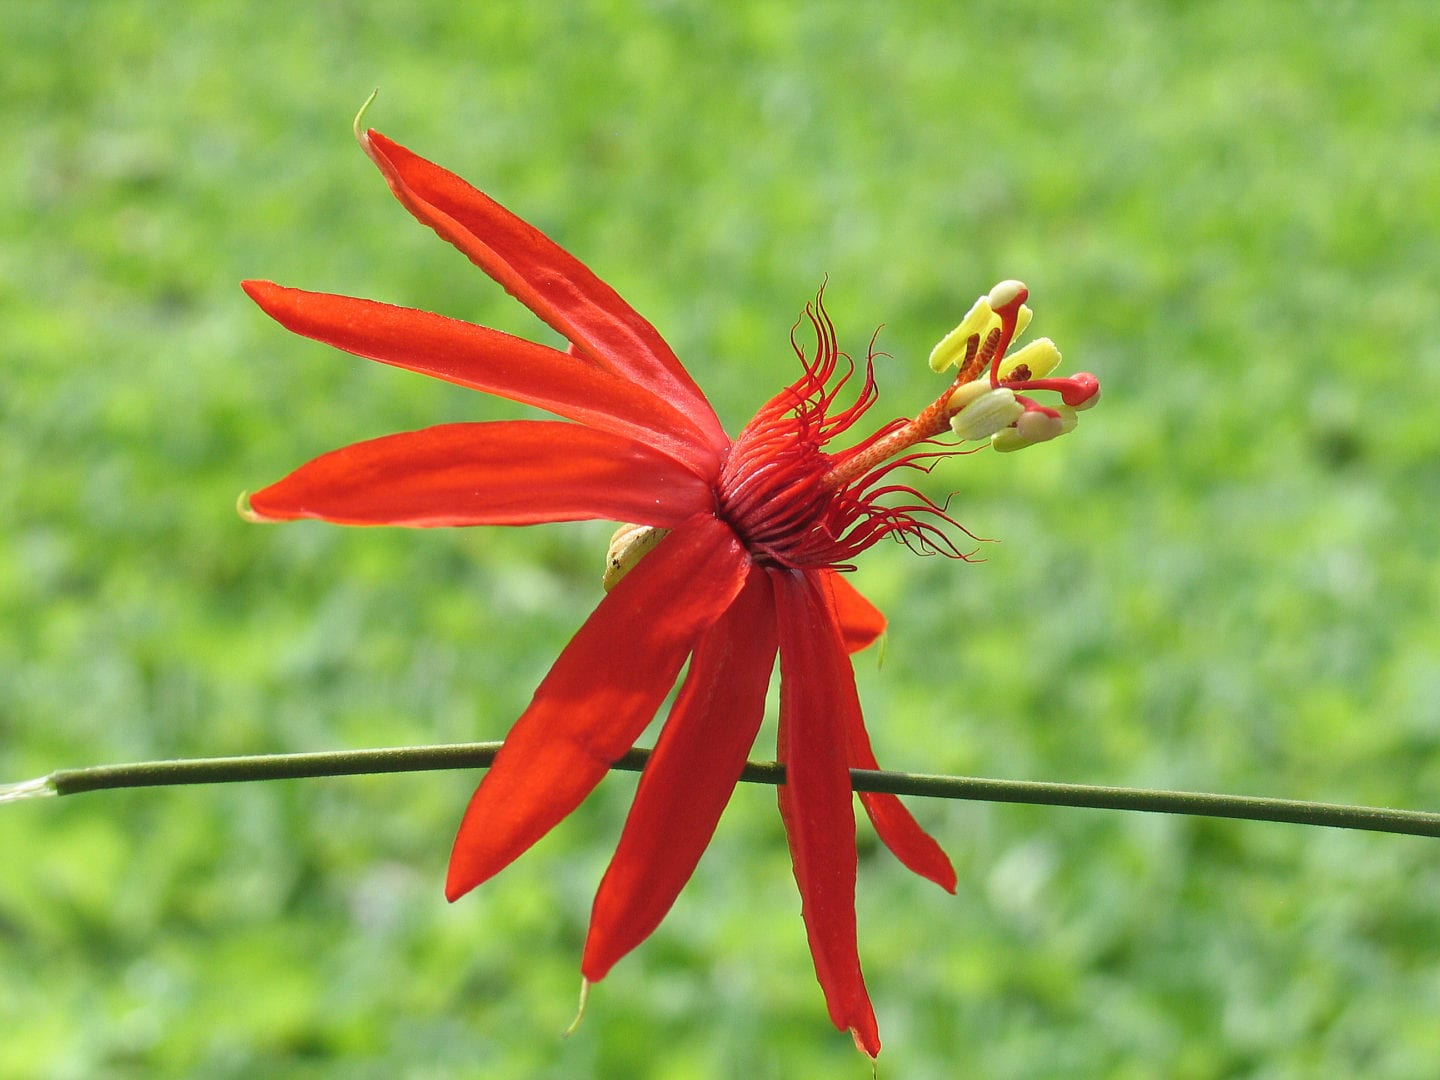 A red Passion Flower